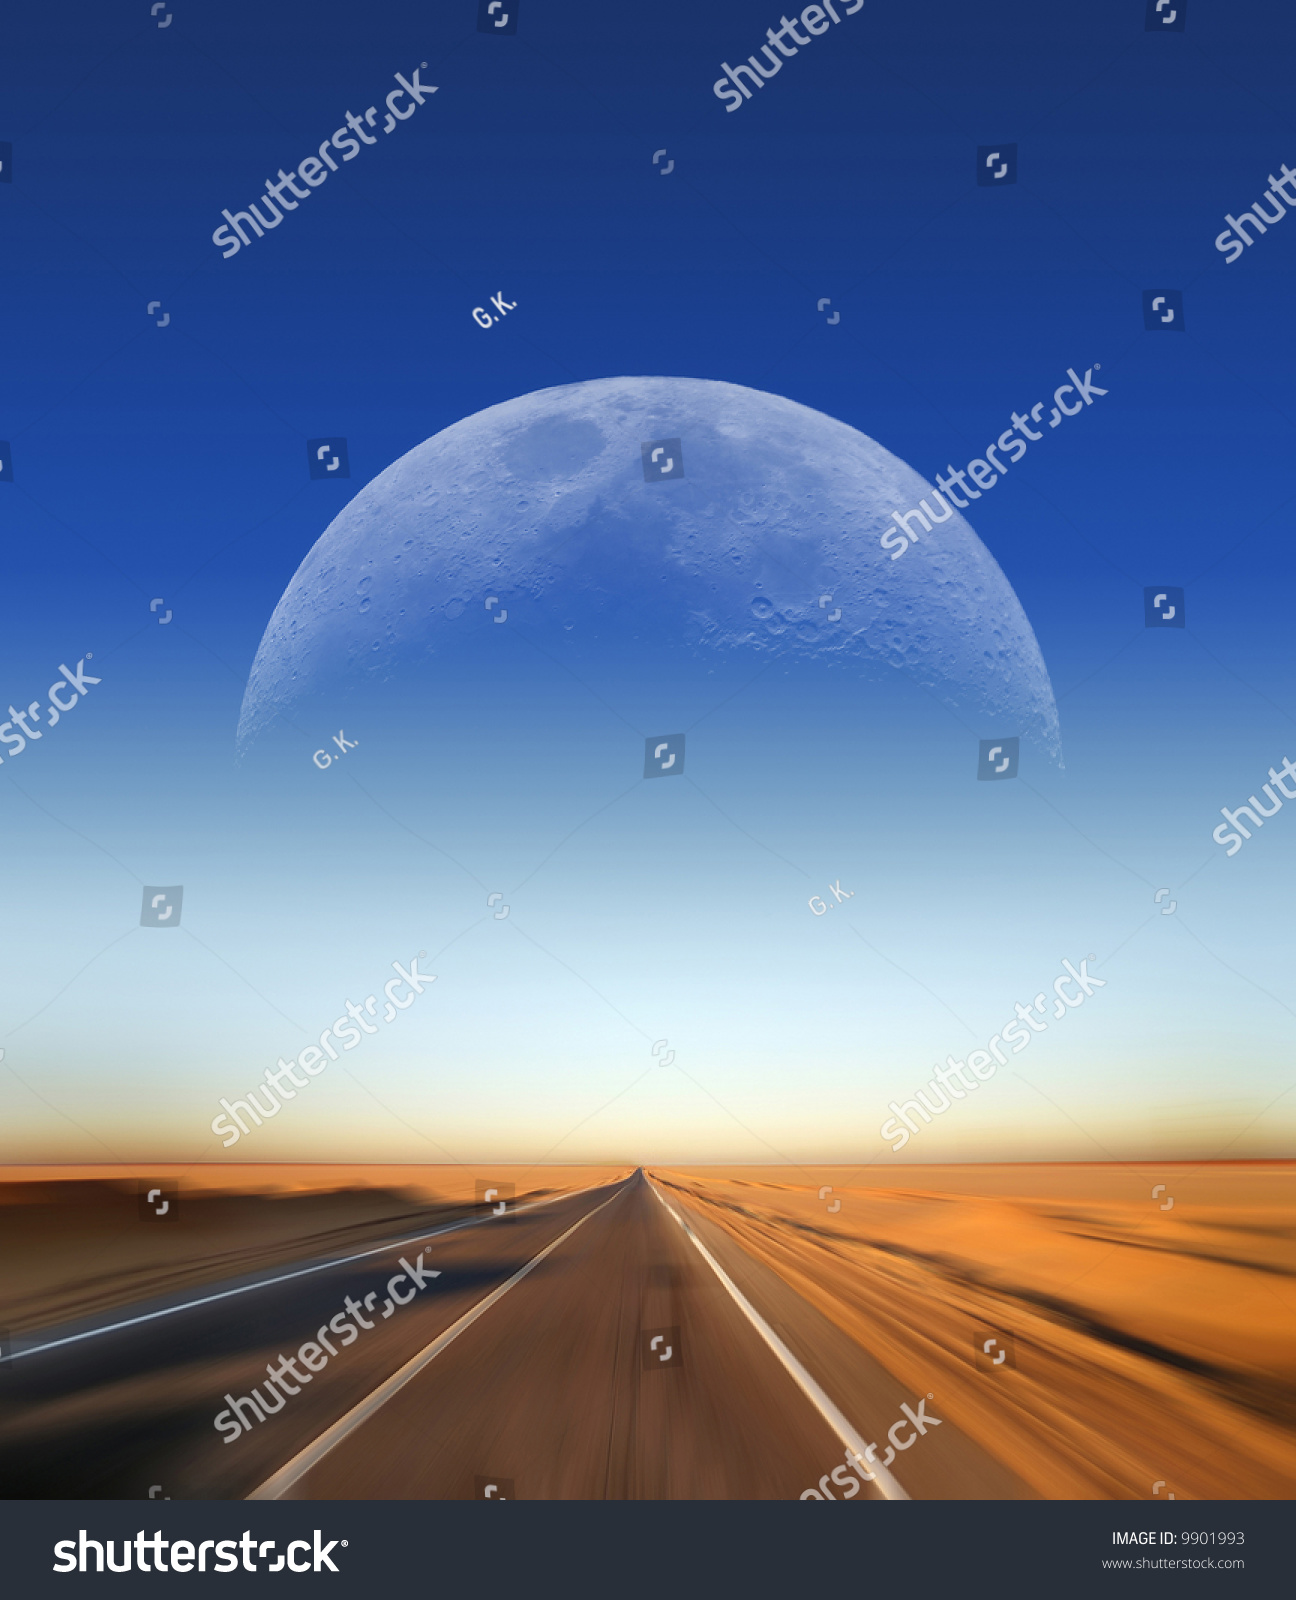 fast driving on desert highway moon stock photo shutterstock fast driving on desert highway moon in the background great for cover page of